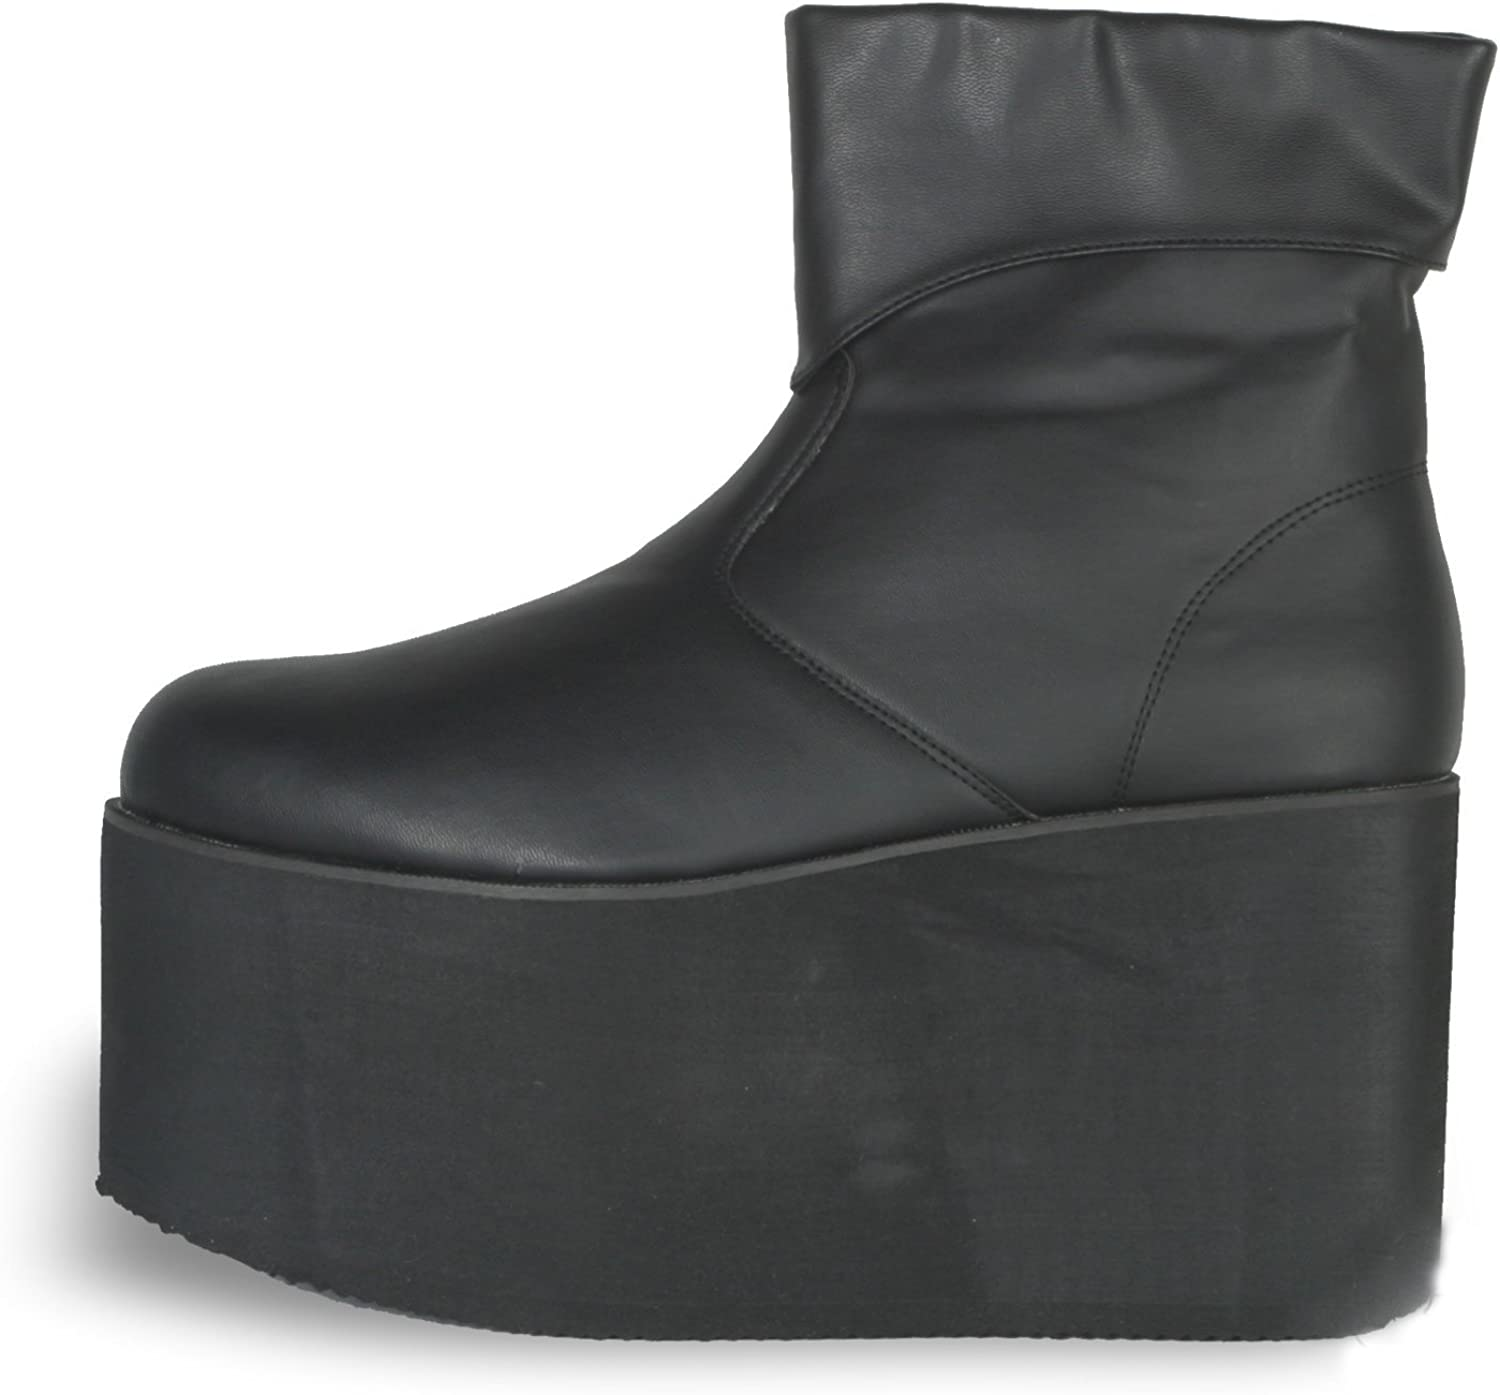 PLEASER 19630 Monster Boots Adult Size Small 8-9